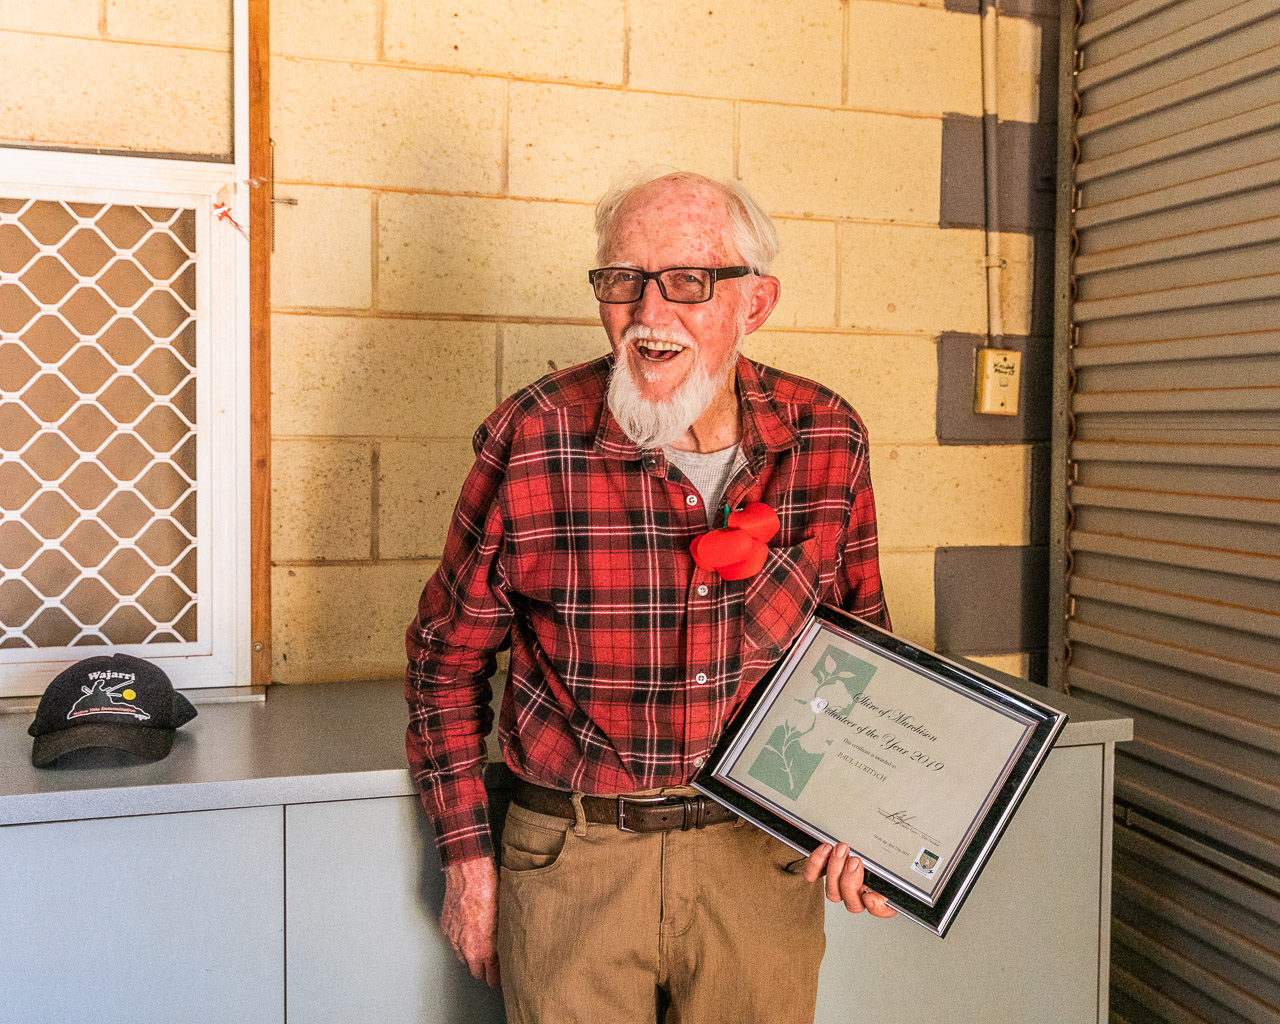 Paul Lukitsch is recognised as Murchison Settlement's Volunteer of the Year